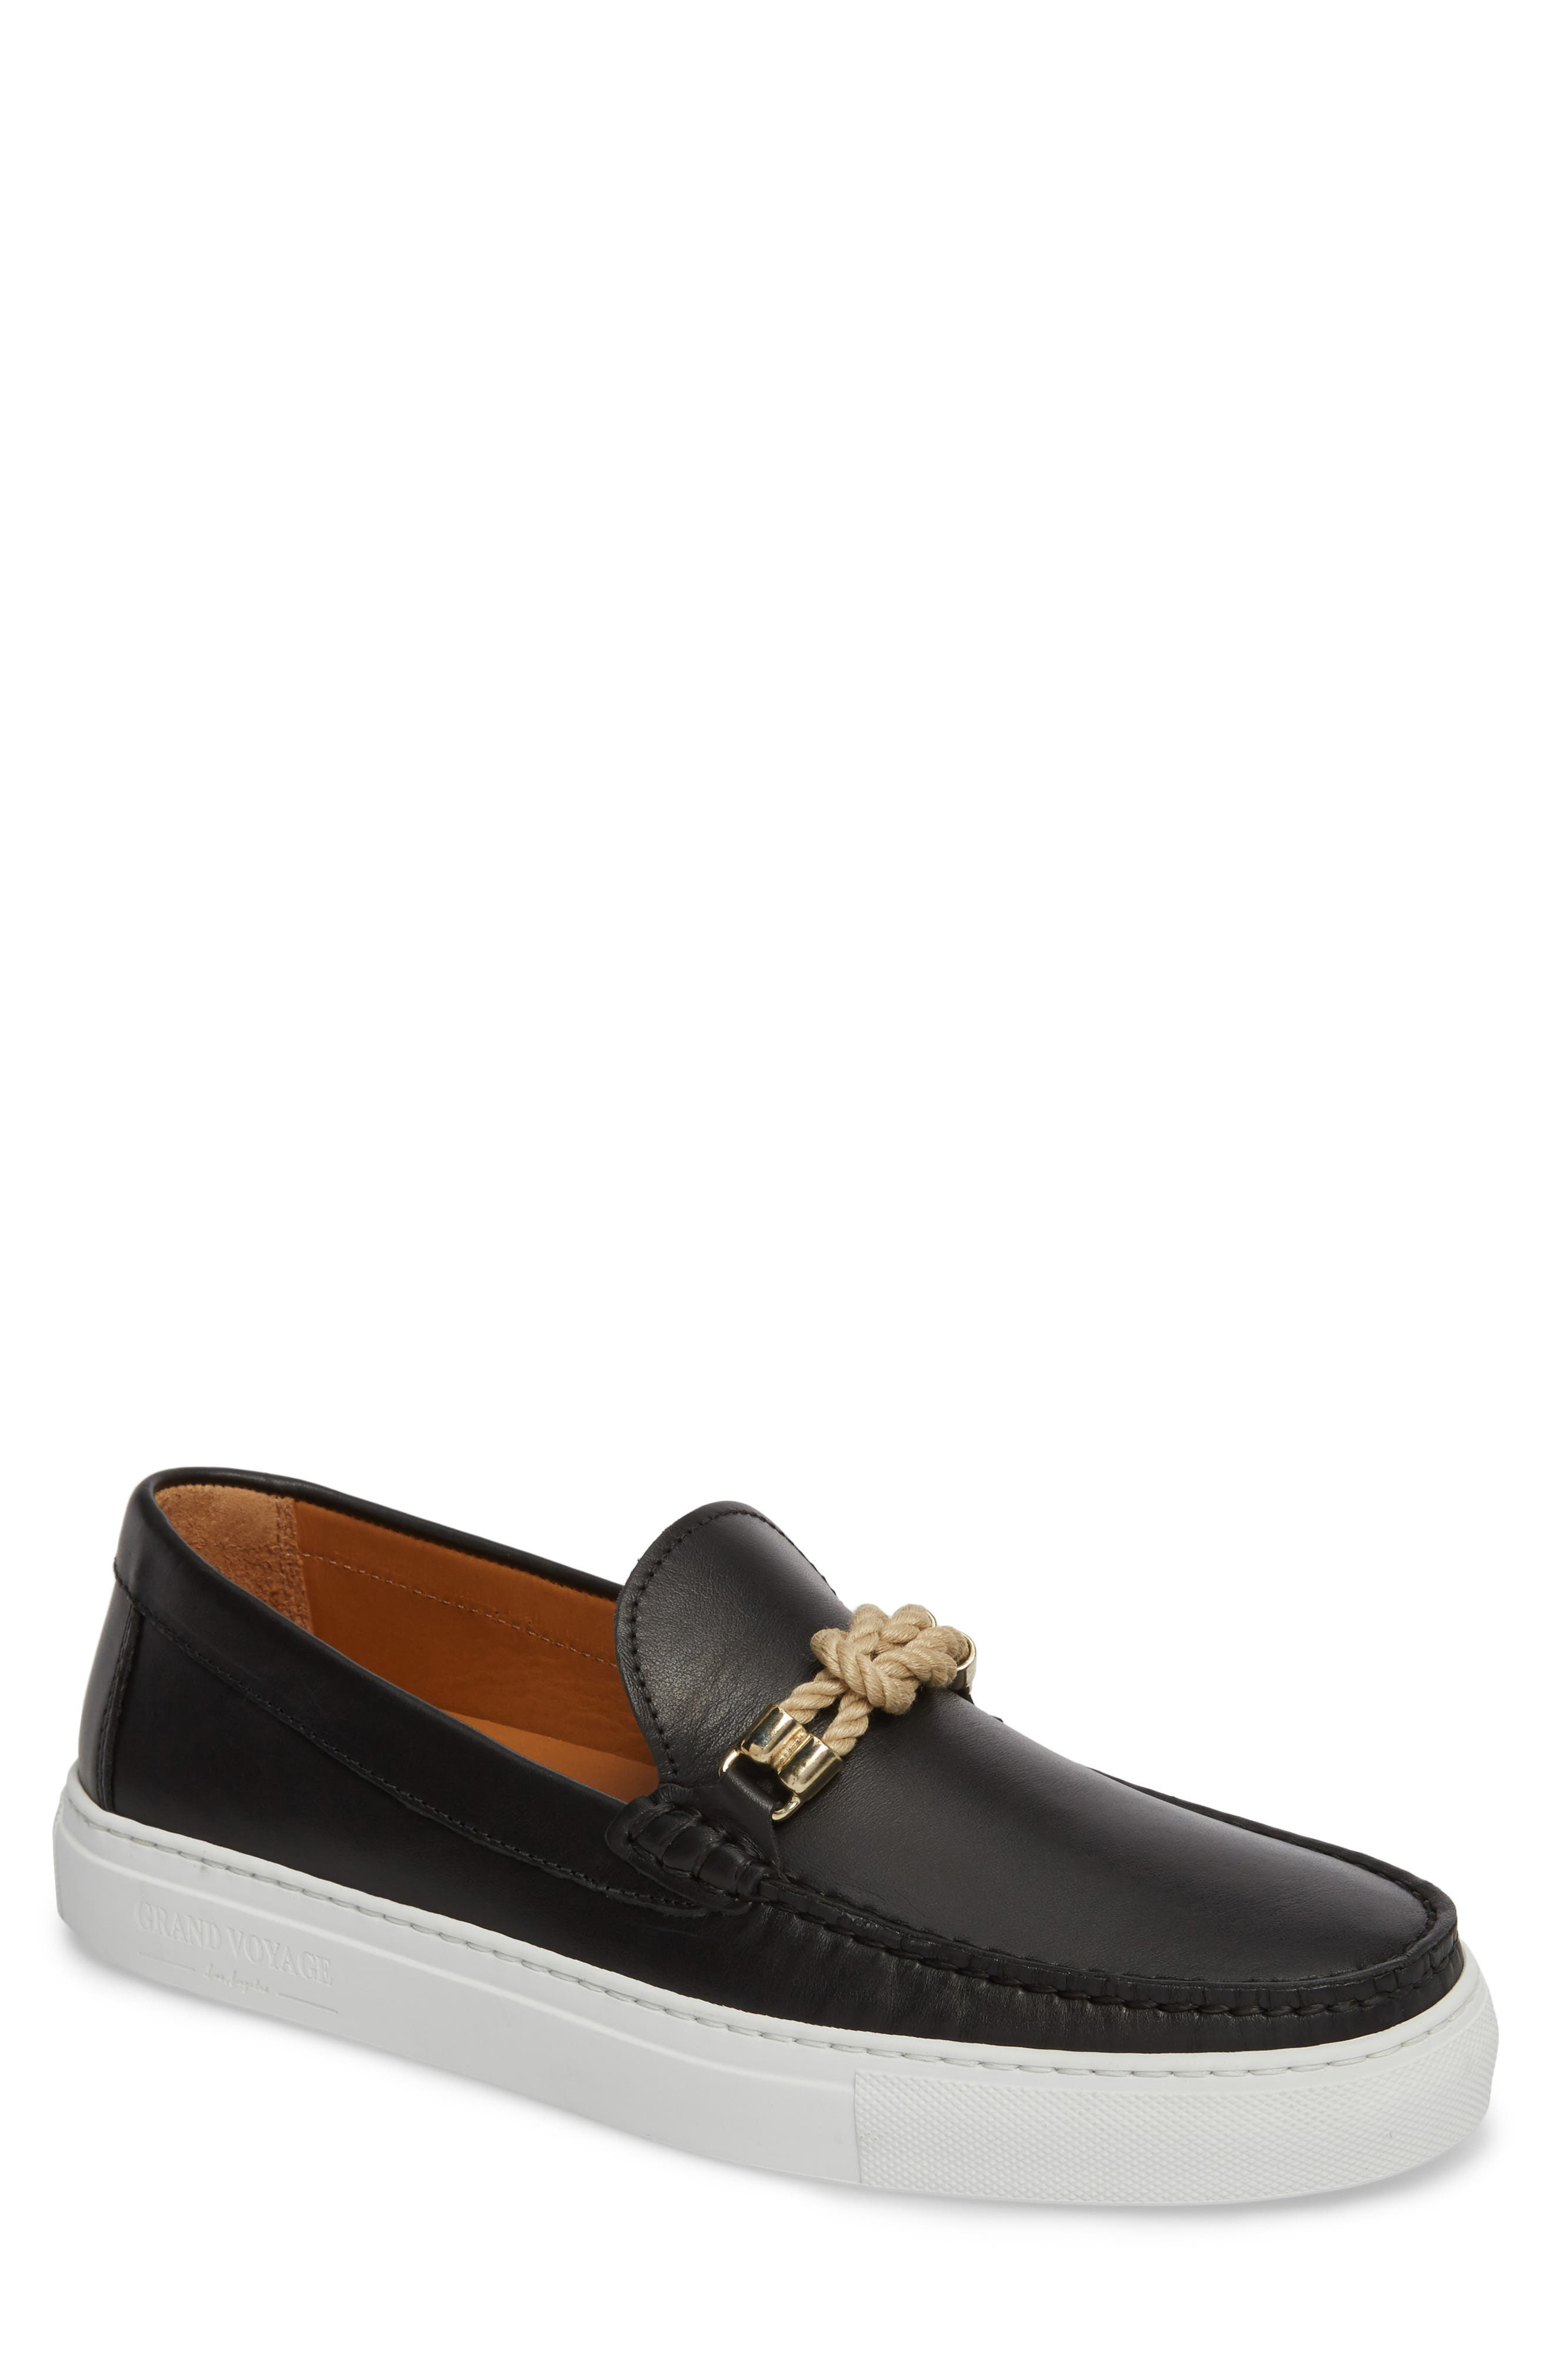 GRAND VOYAGE Britton Square Knot Loafer in Black Leather